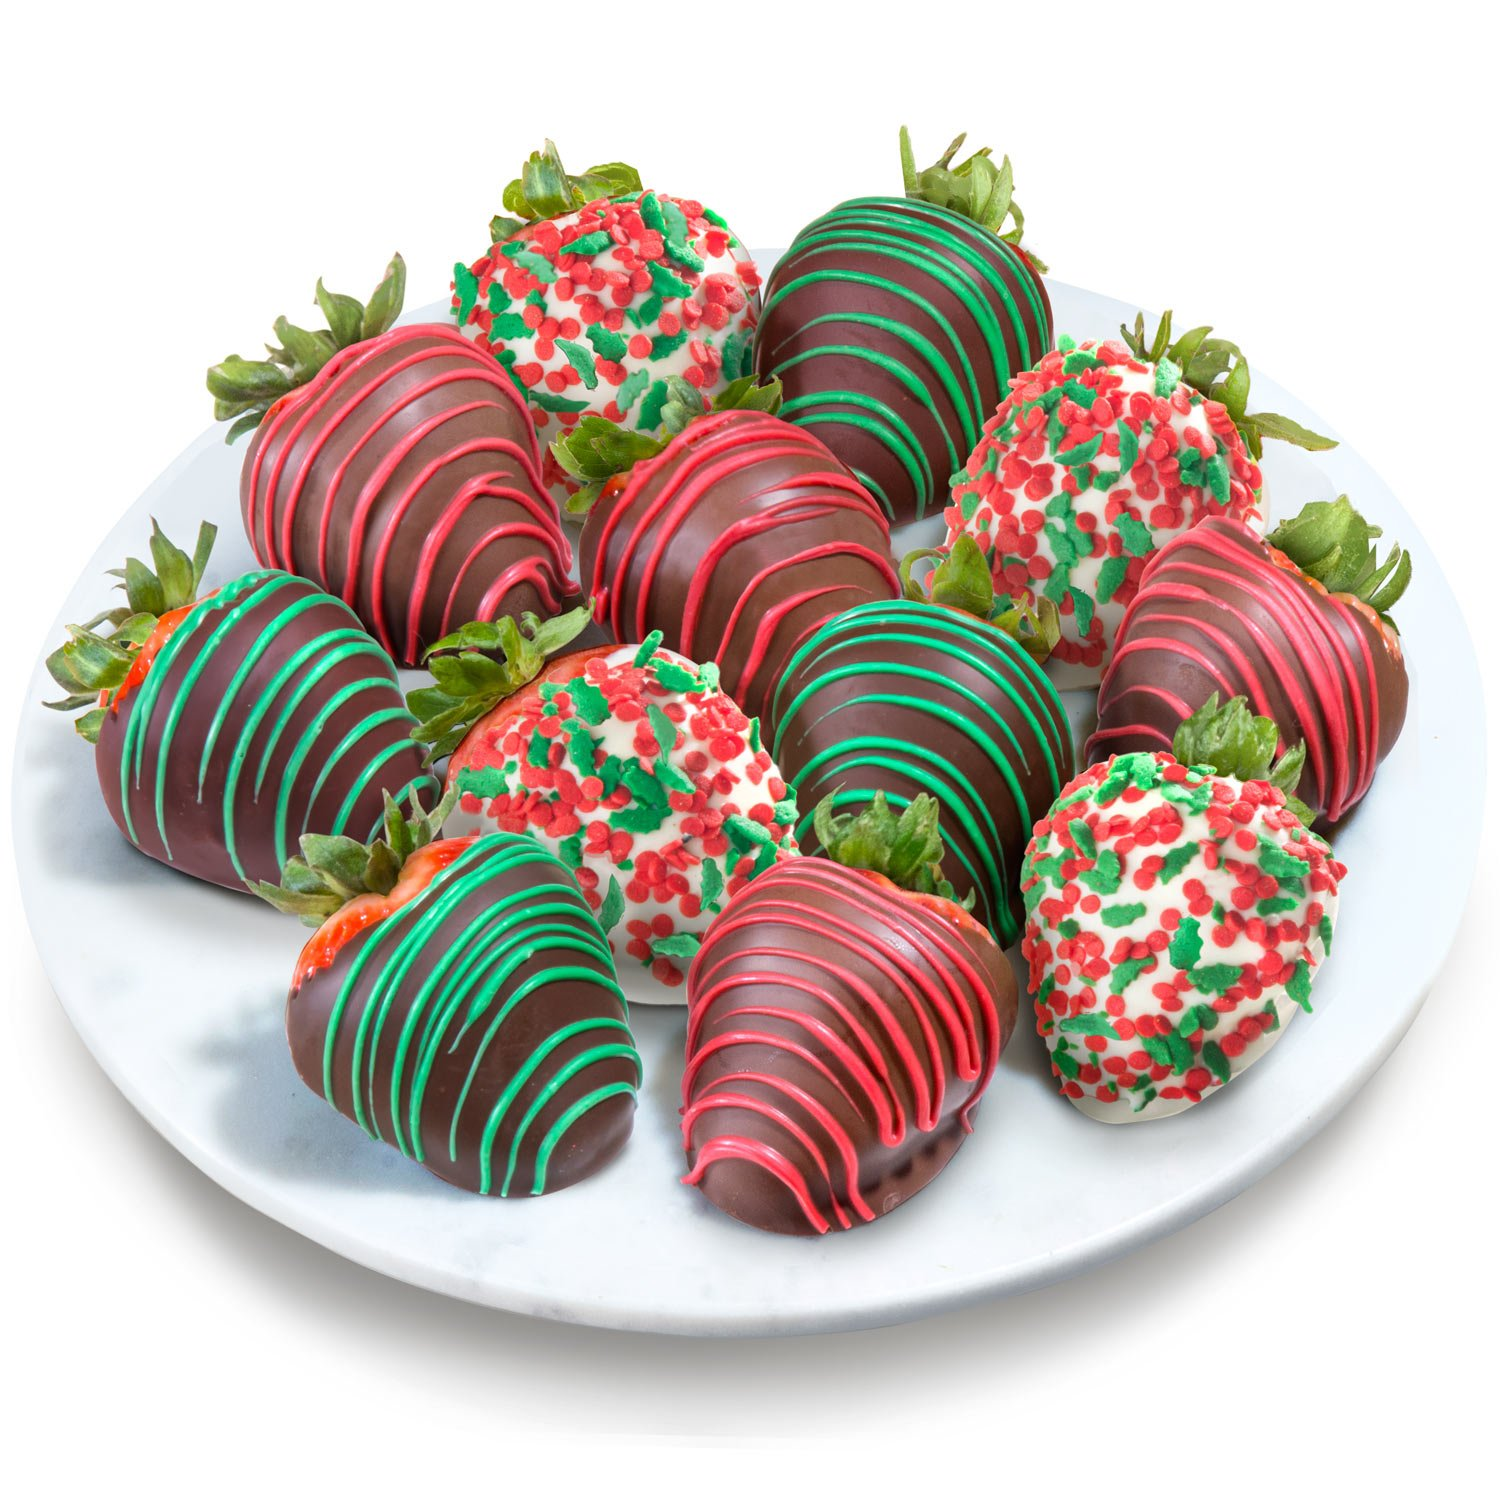 Amazoncom Golden State Fruit 12 Merry Christmas Chocolate Covered Strawberries